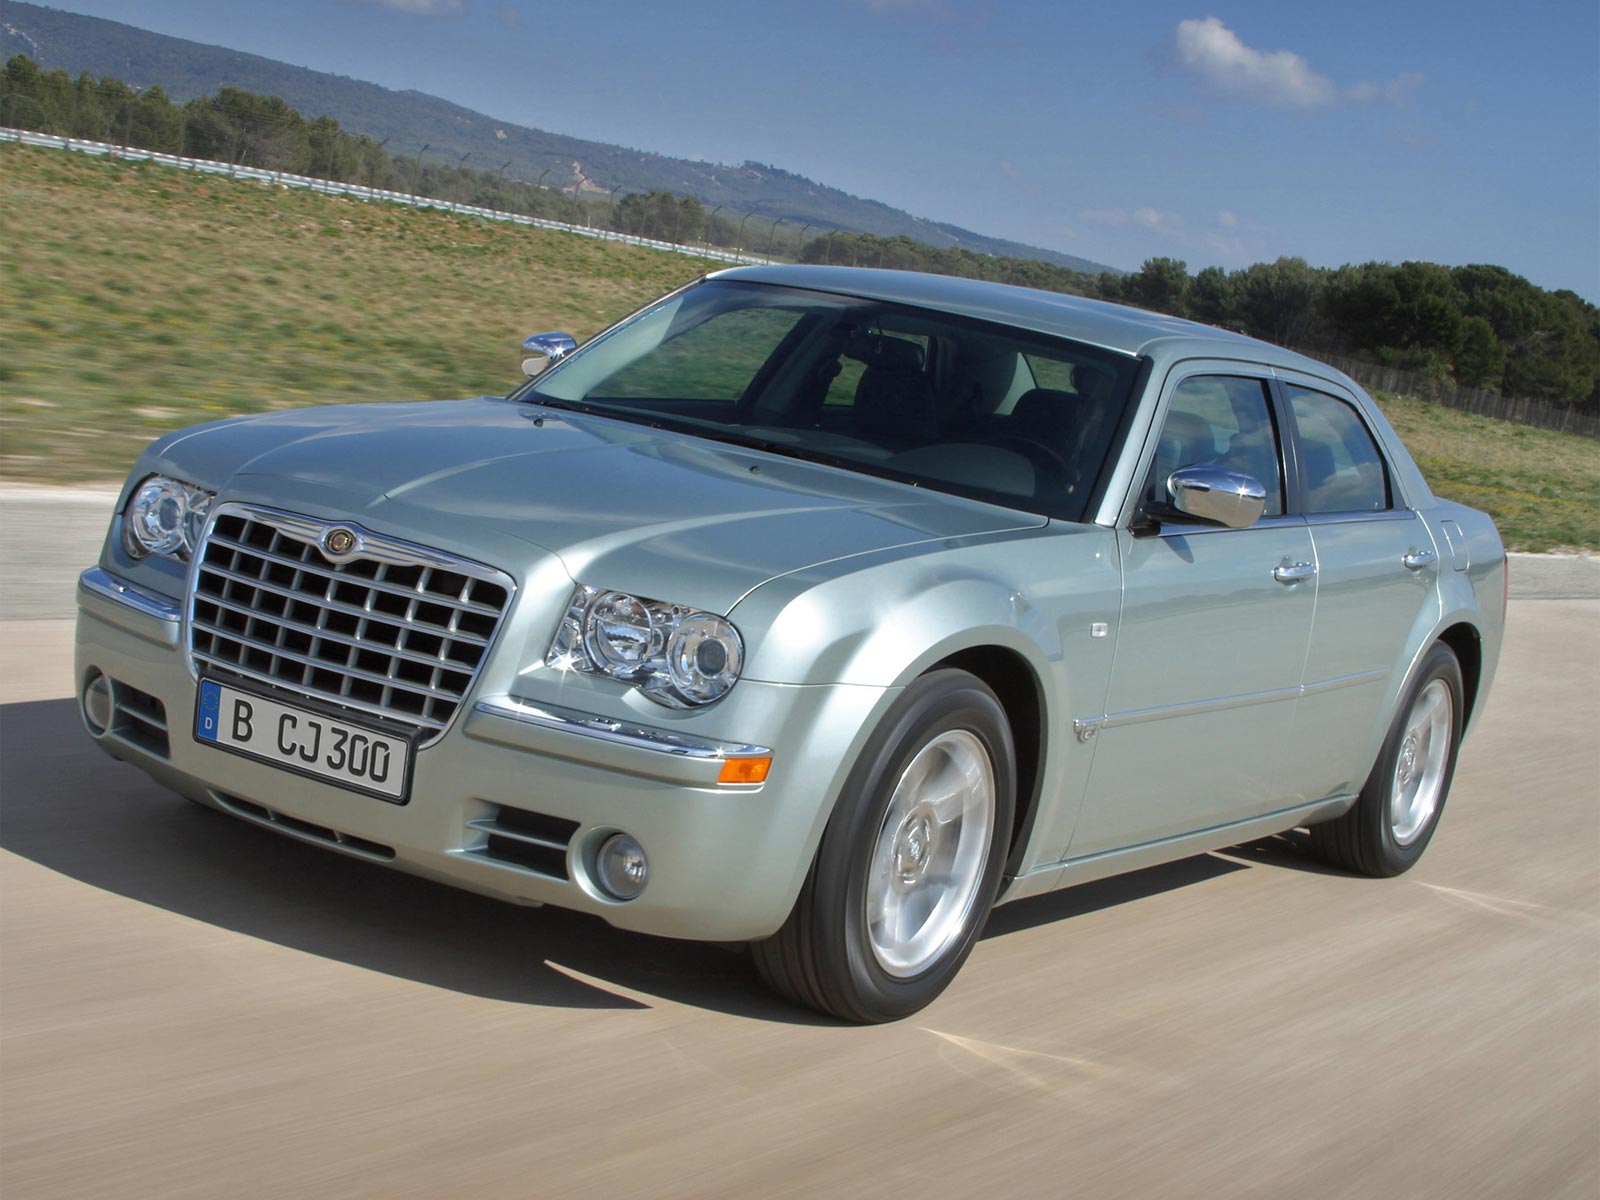 2004 Chrysler 300C Sedan 4-door